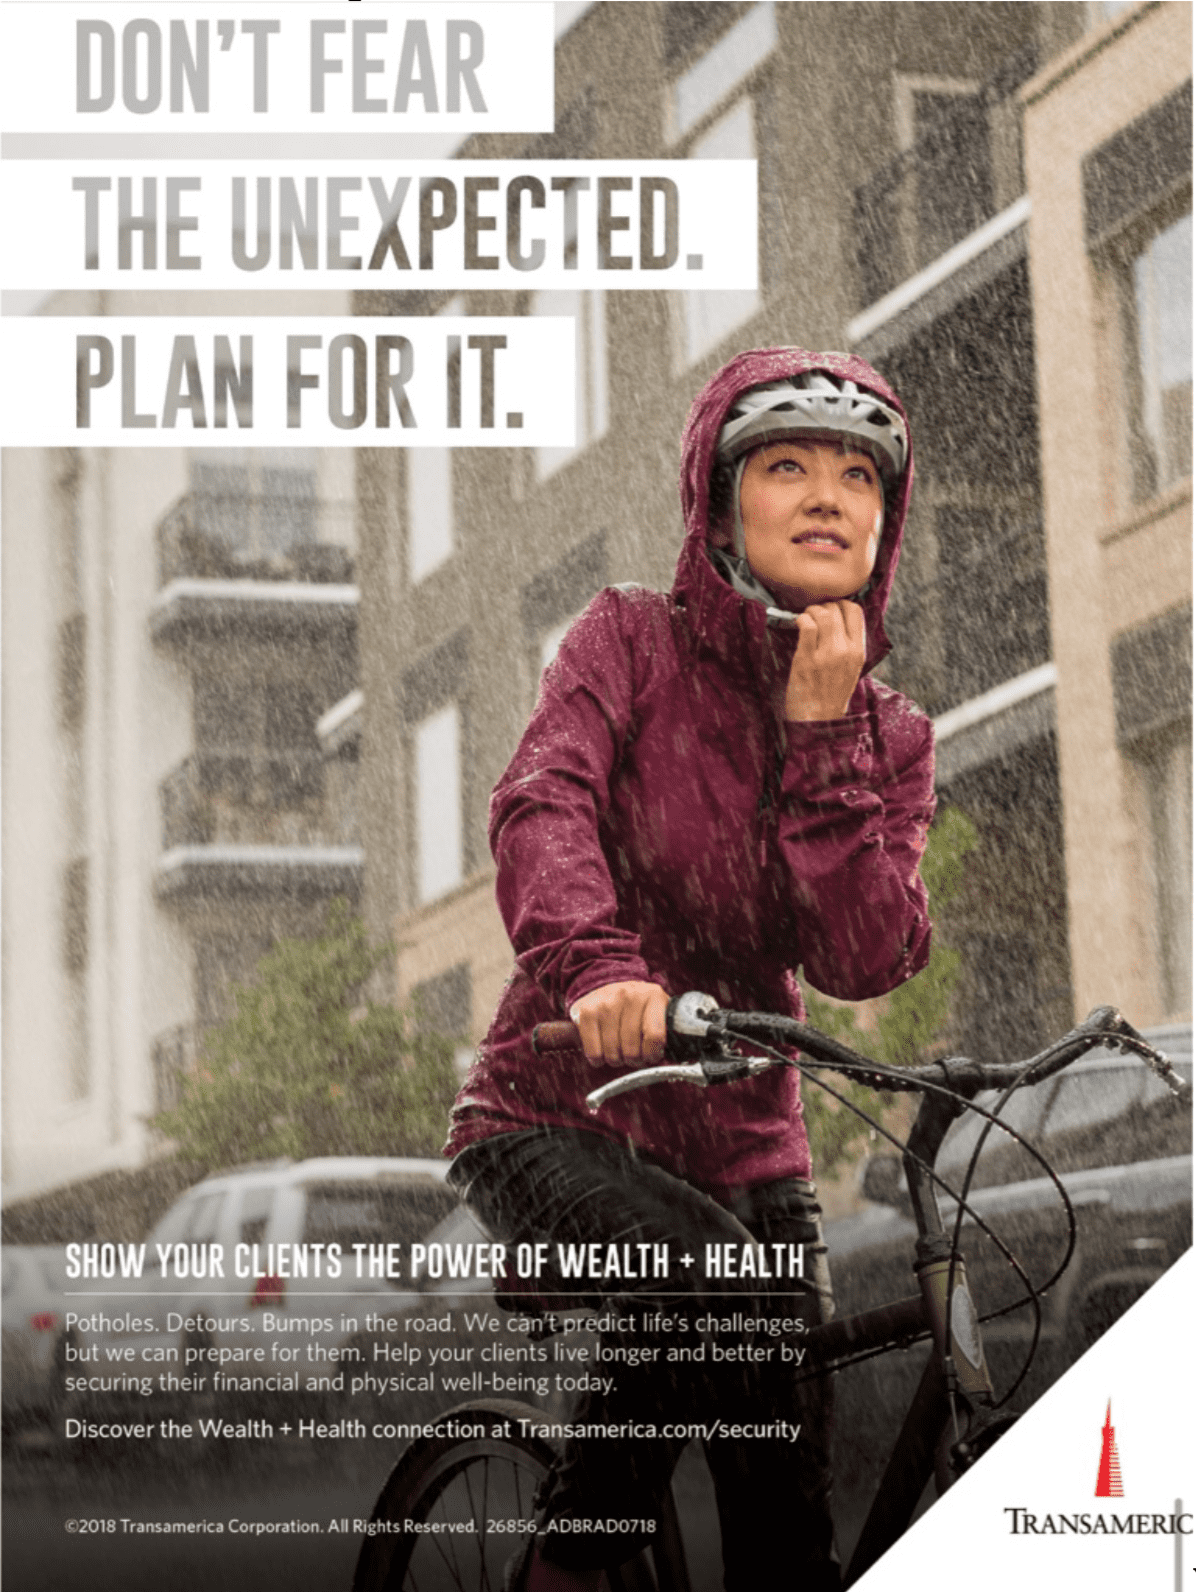 Print advertisement for Transamerica showing a woman riding a bike in the rain